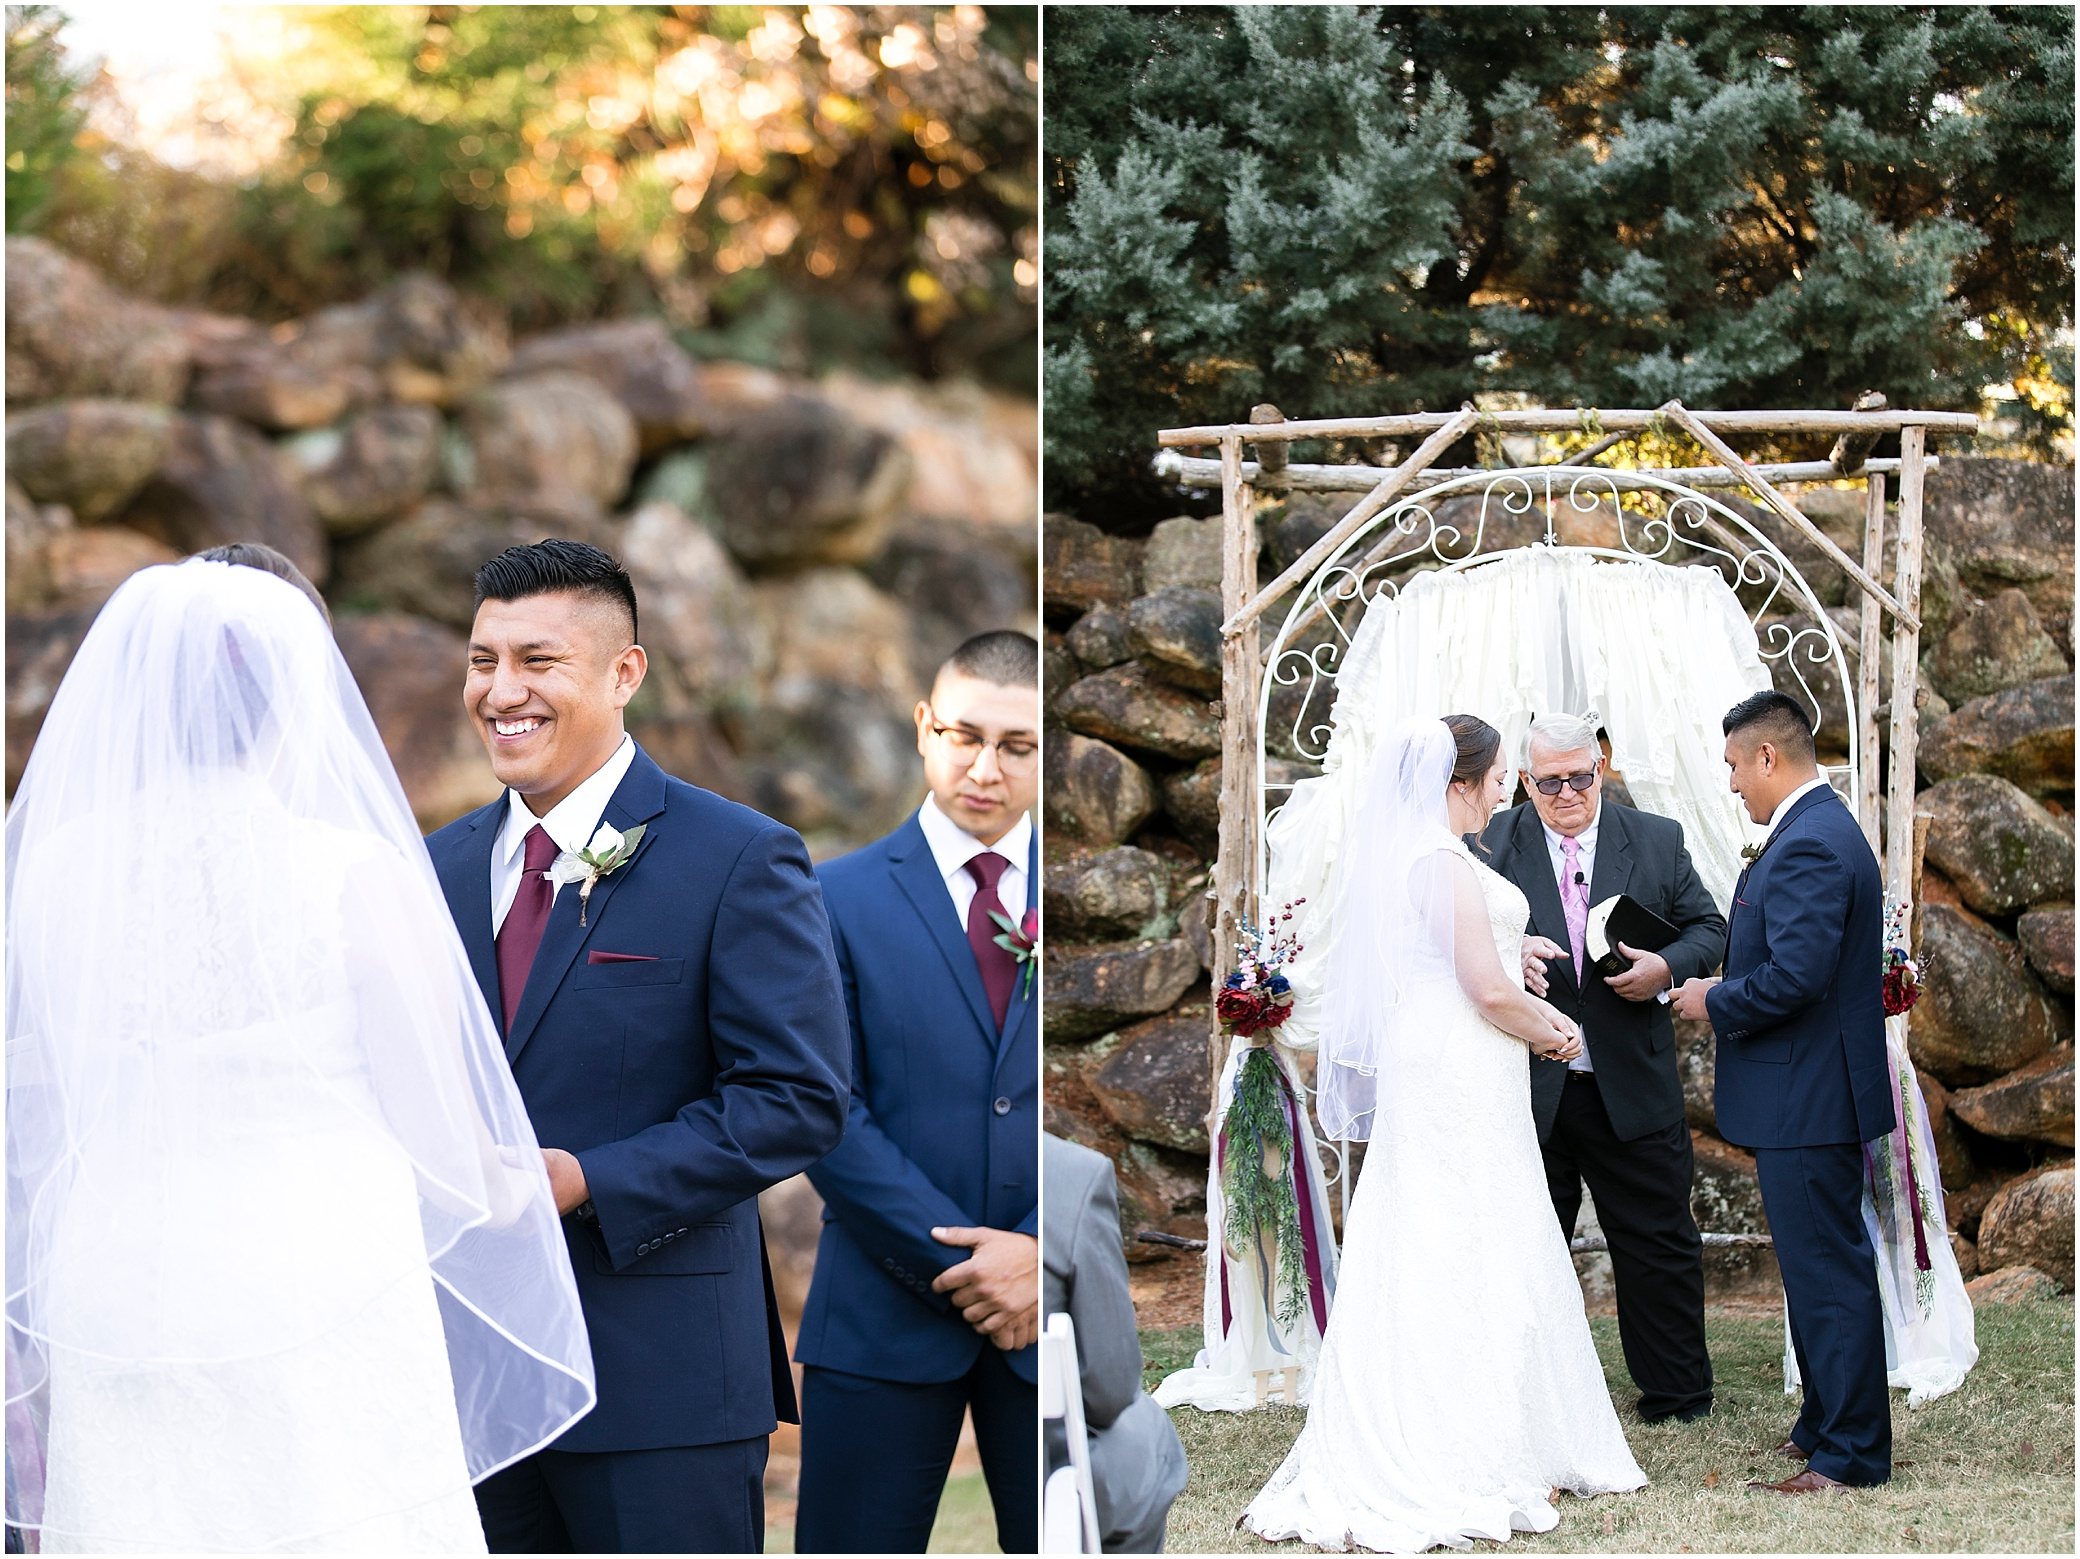 Larkin's Sawmill wedding in Greenville, South Carolina, outdoor wedding ceremony